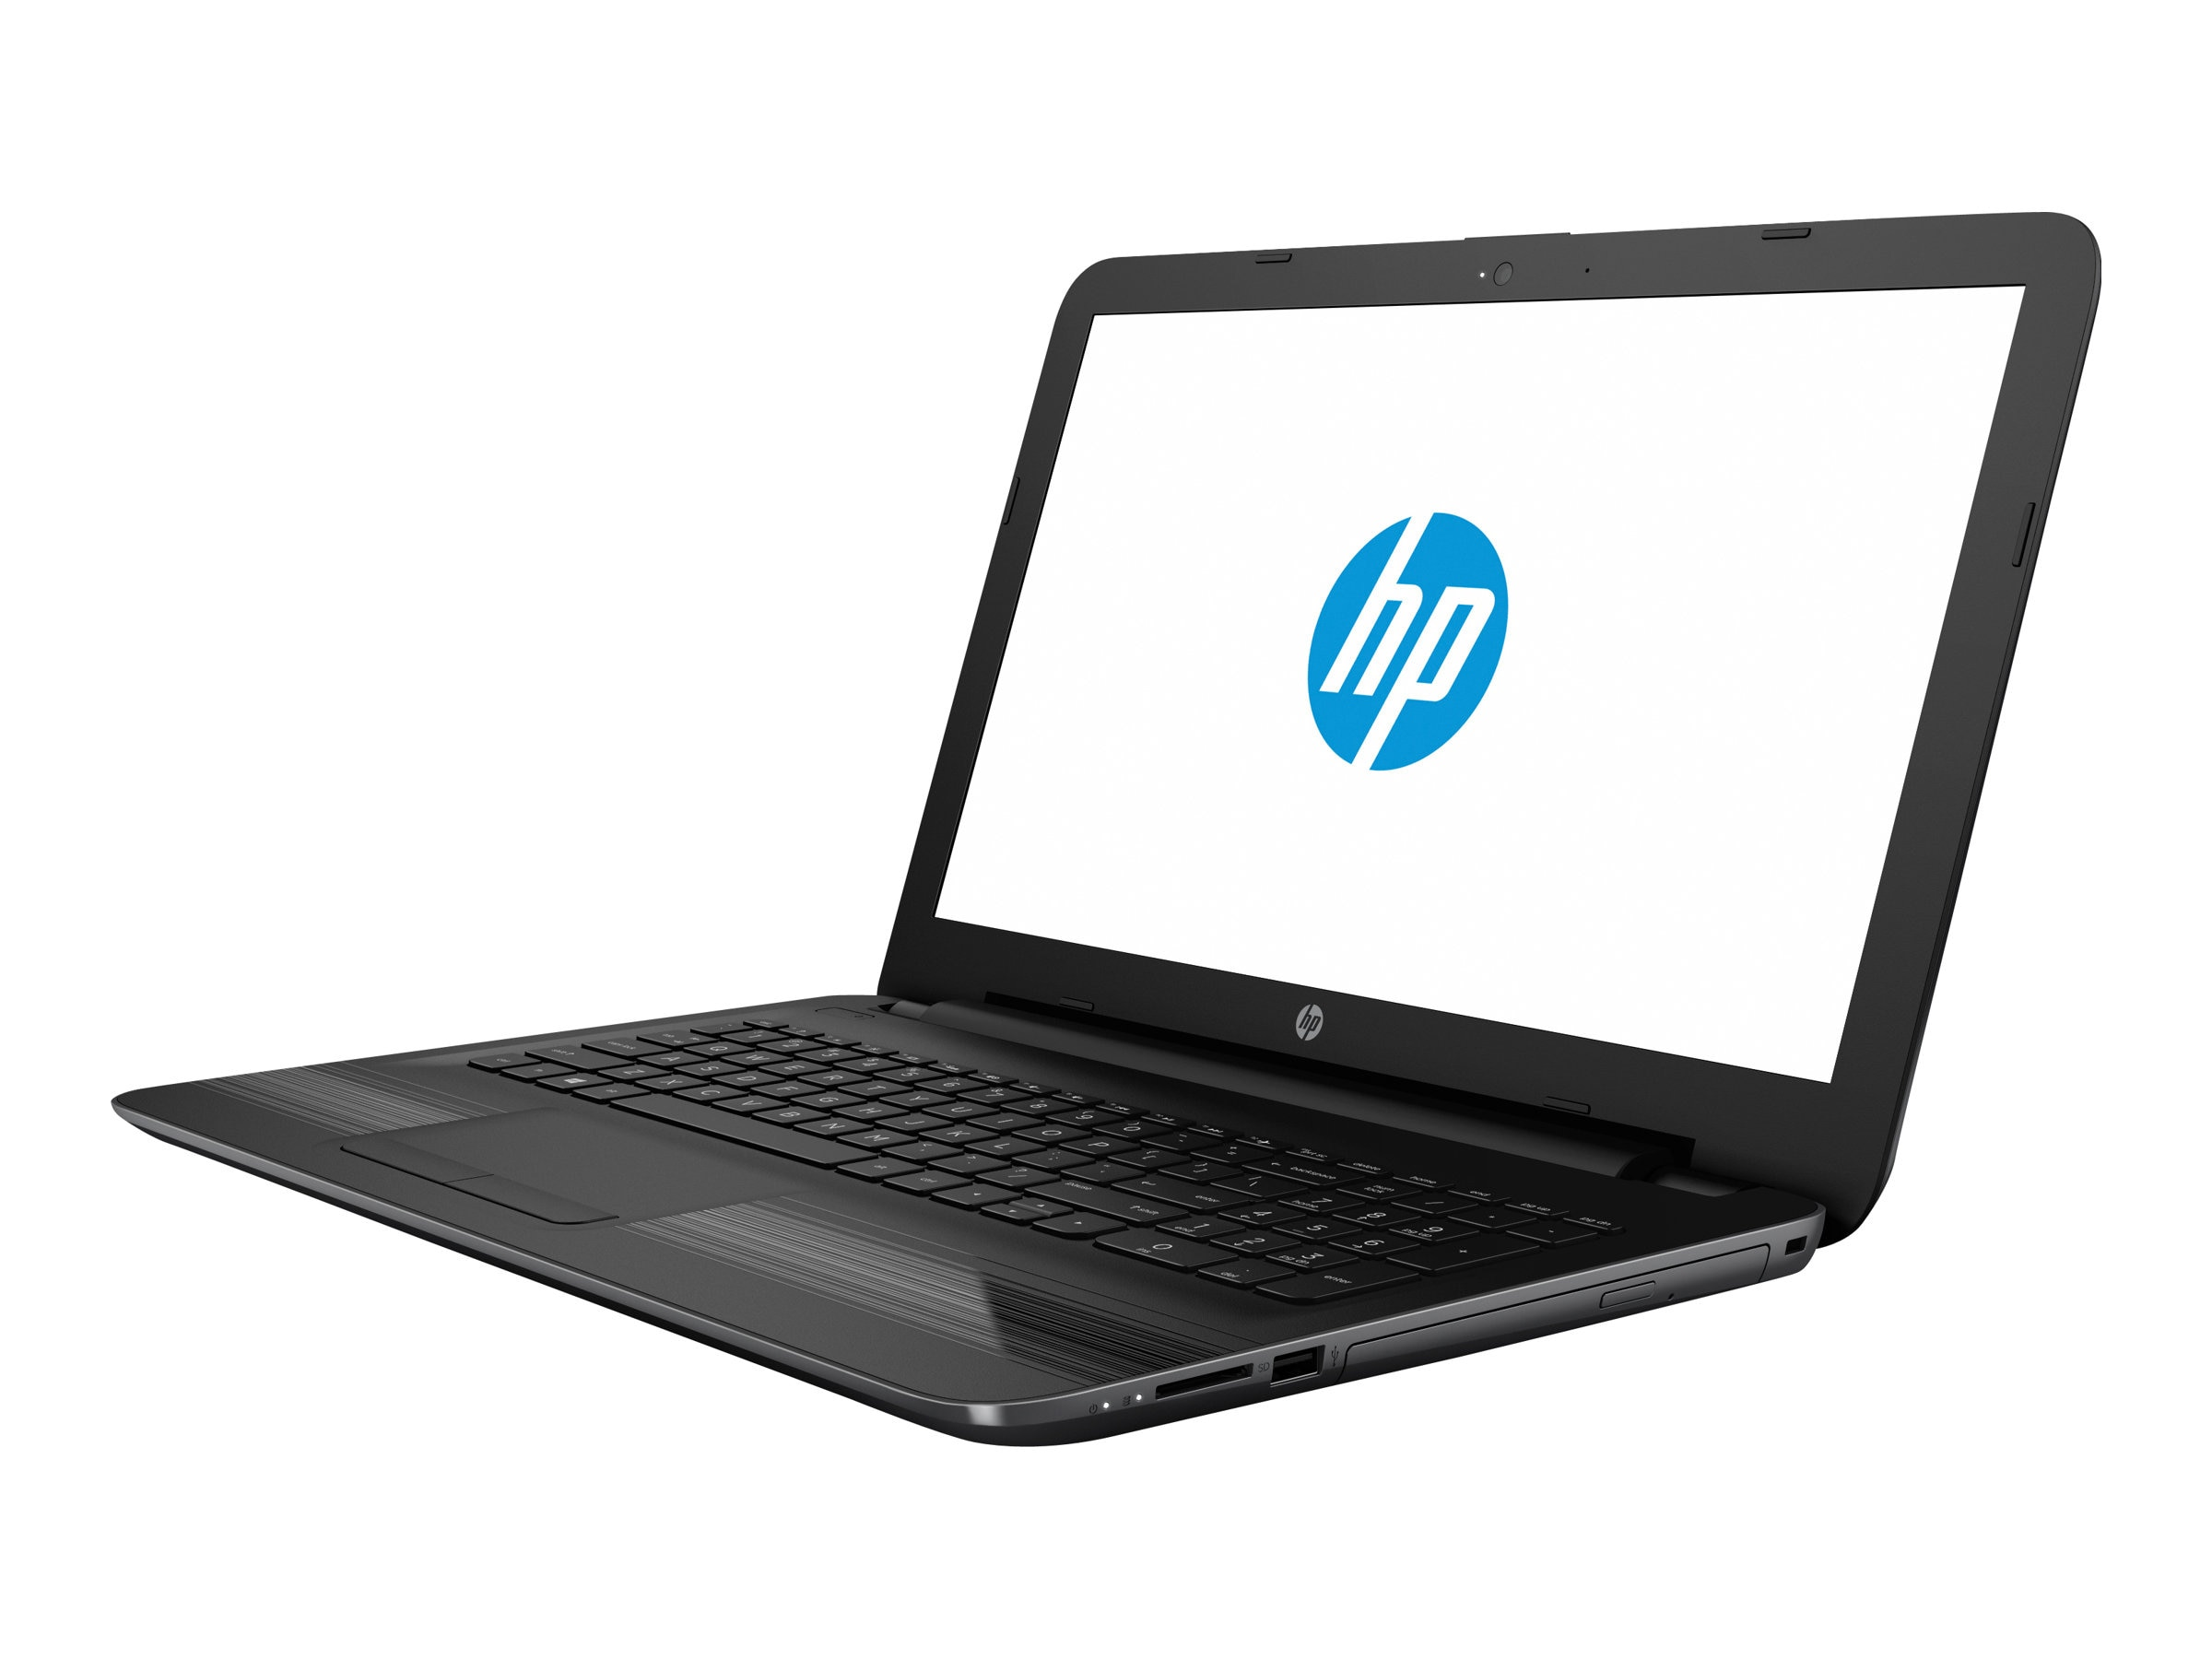 HP 250 G5 2.3GHz Core i5 15.6in display